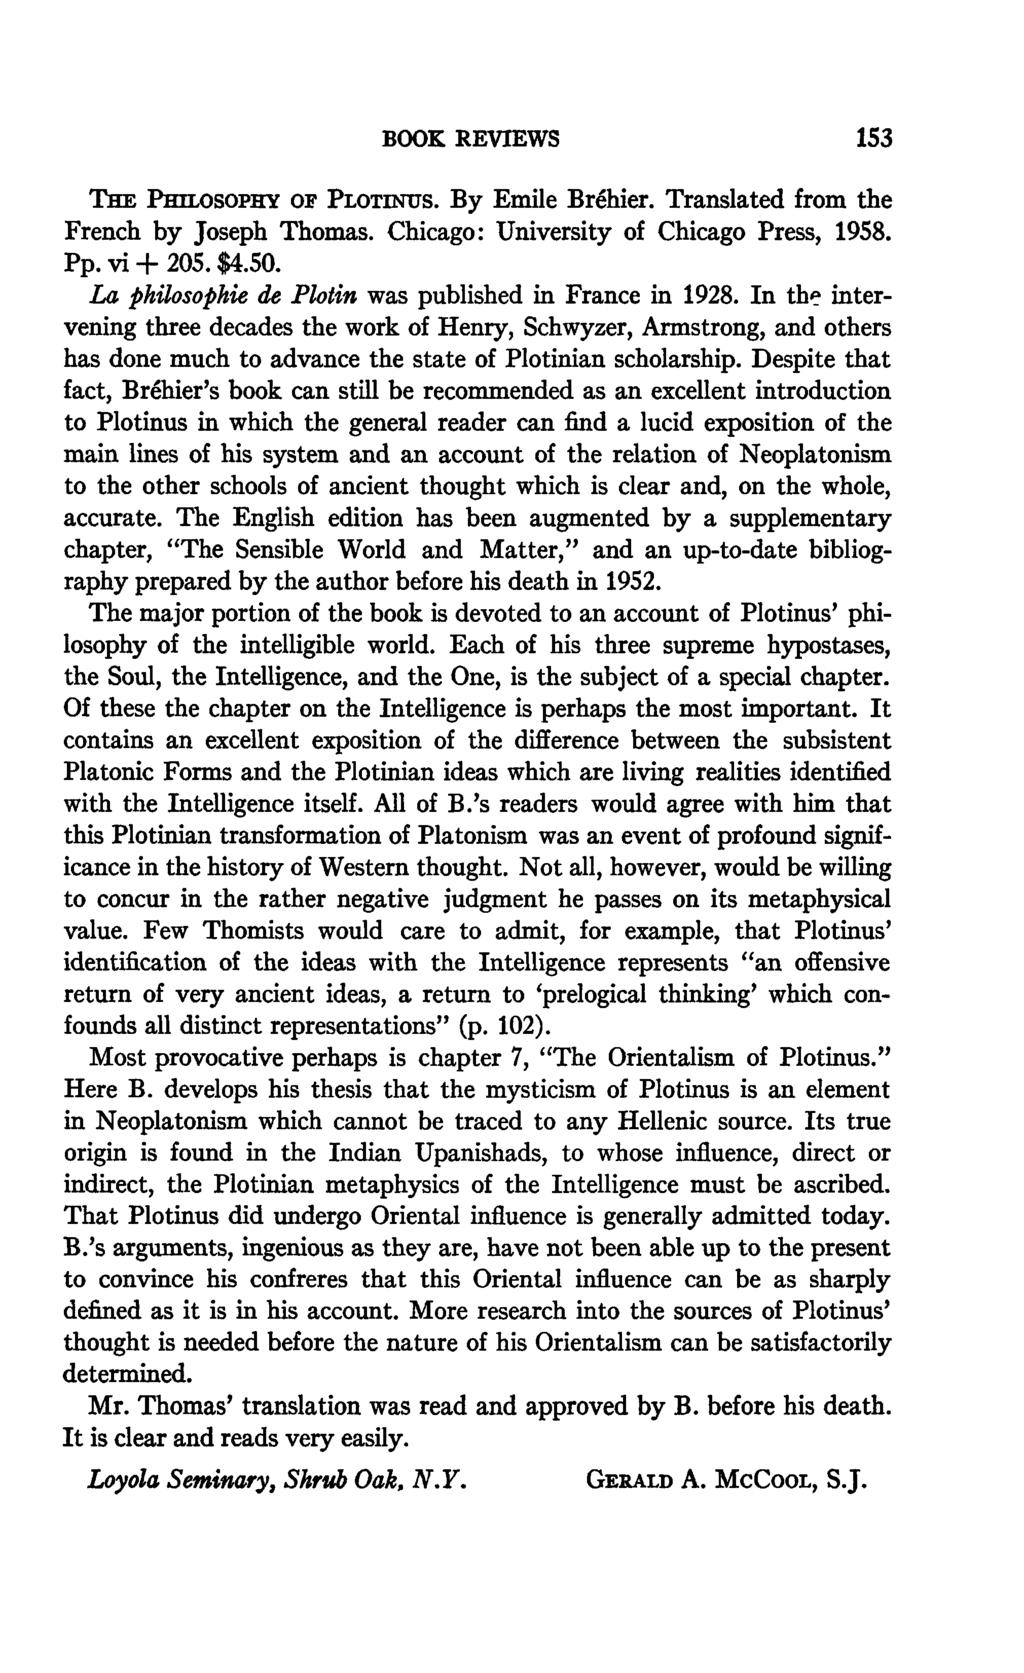 BOOK REVIEWS 153 THE PHILOSOPHY OF PLOTINUS. By Emile Bréhier. Translated from the French by Joseph Thomas. Chicago: University of Chicago Press, 1958. Pp. vi + 205. $4.50.